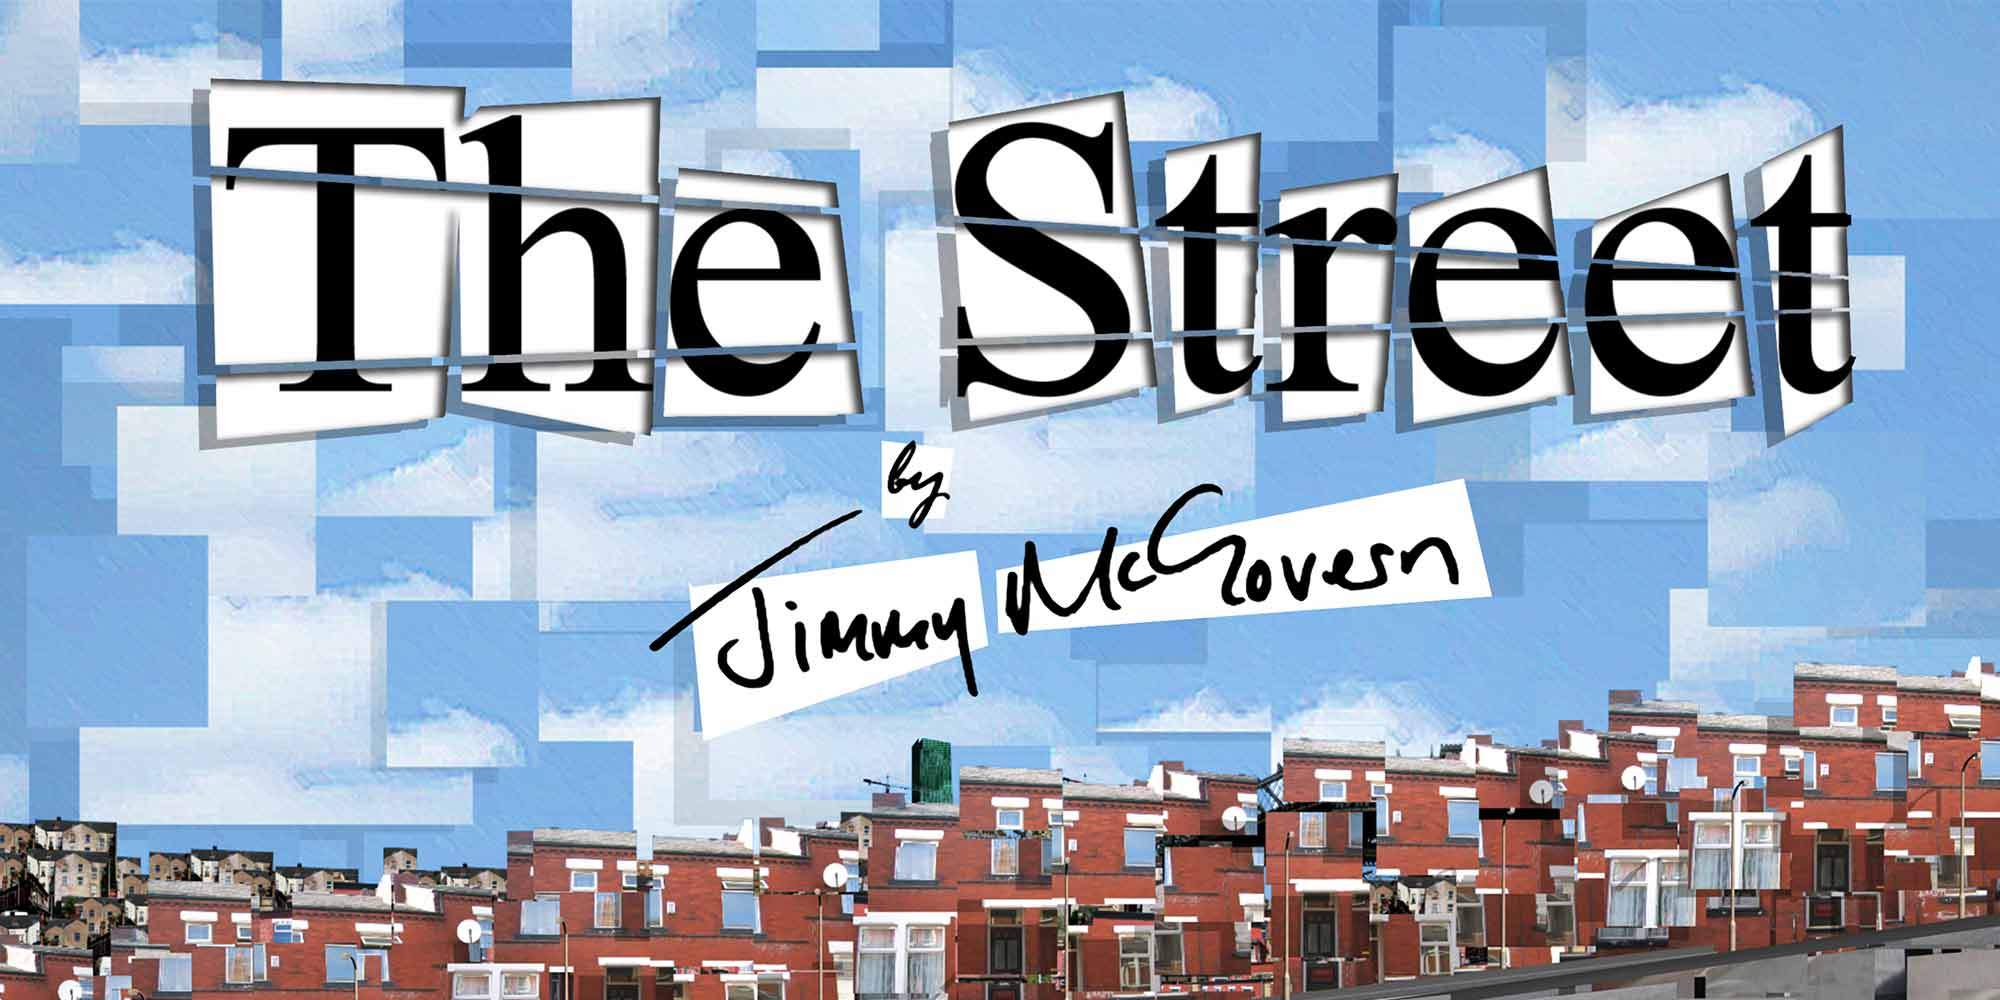 Media Animation – 'The Street' Title Sequence